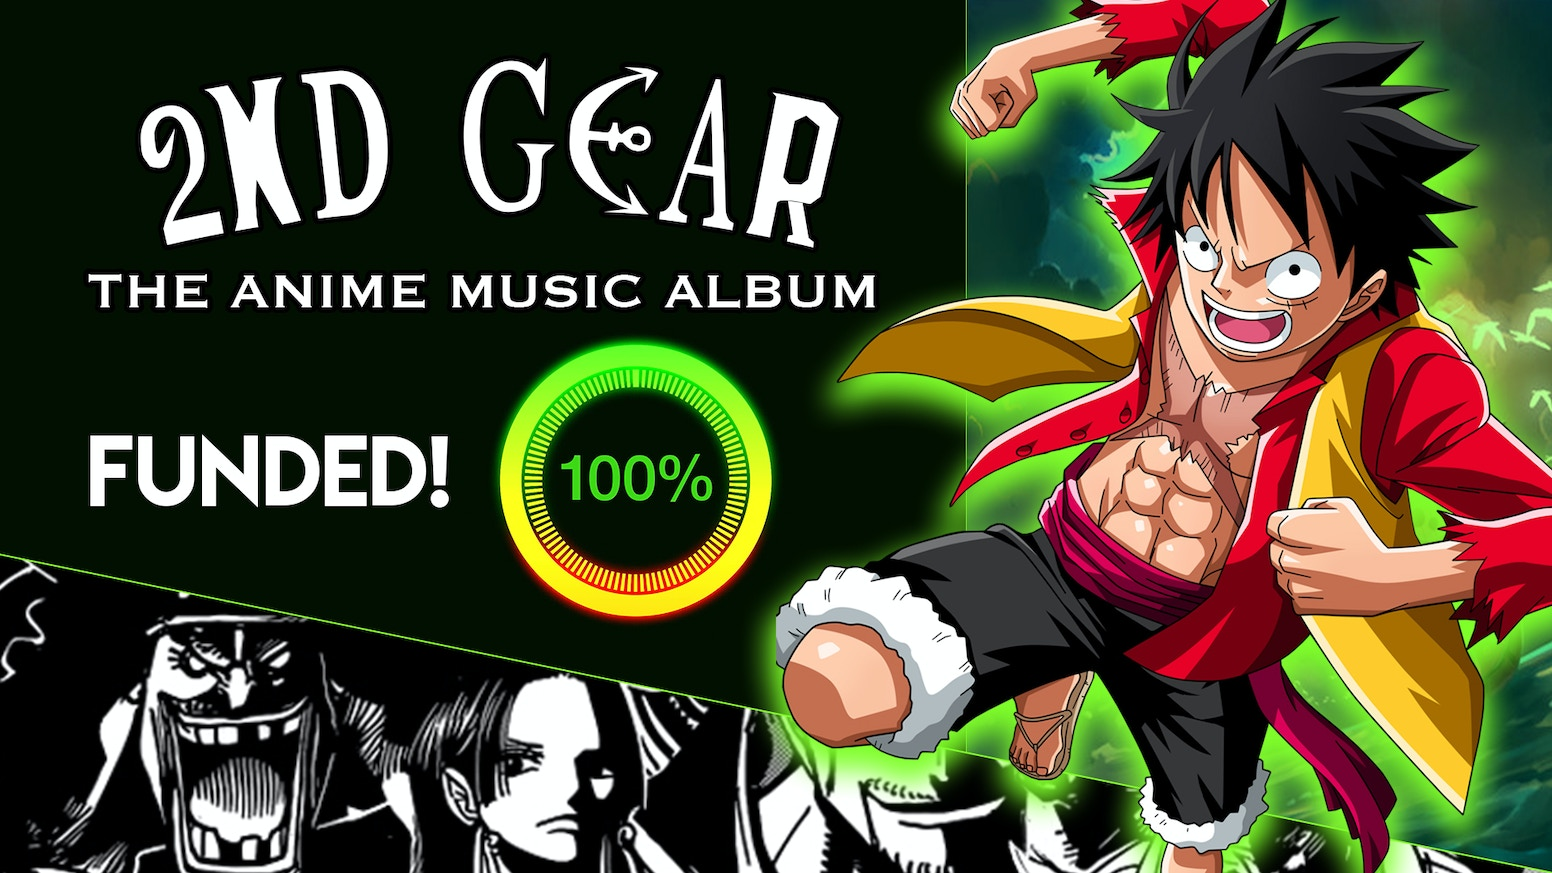 Relive the most impactful anime moments through the music like youve never heard it